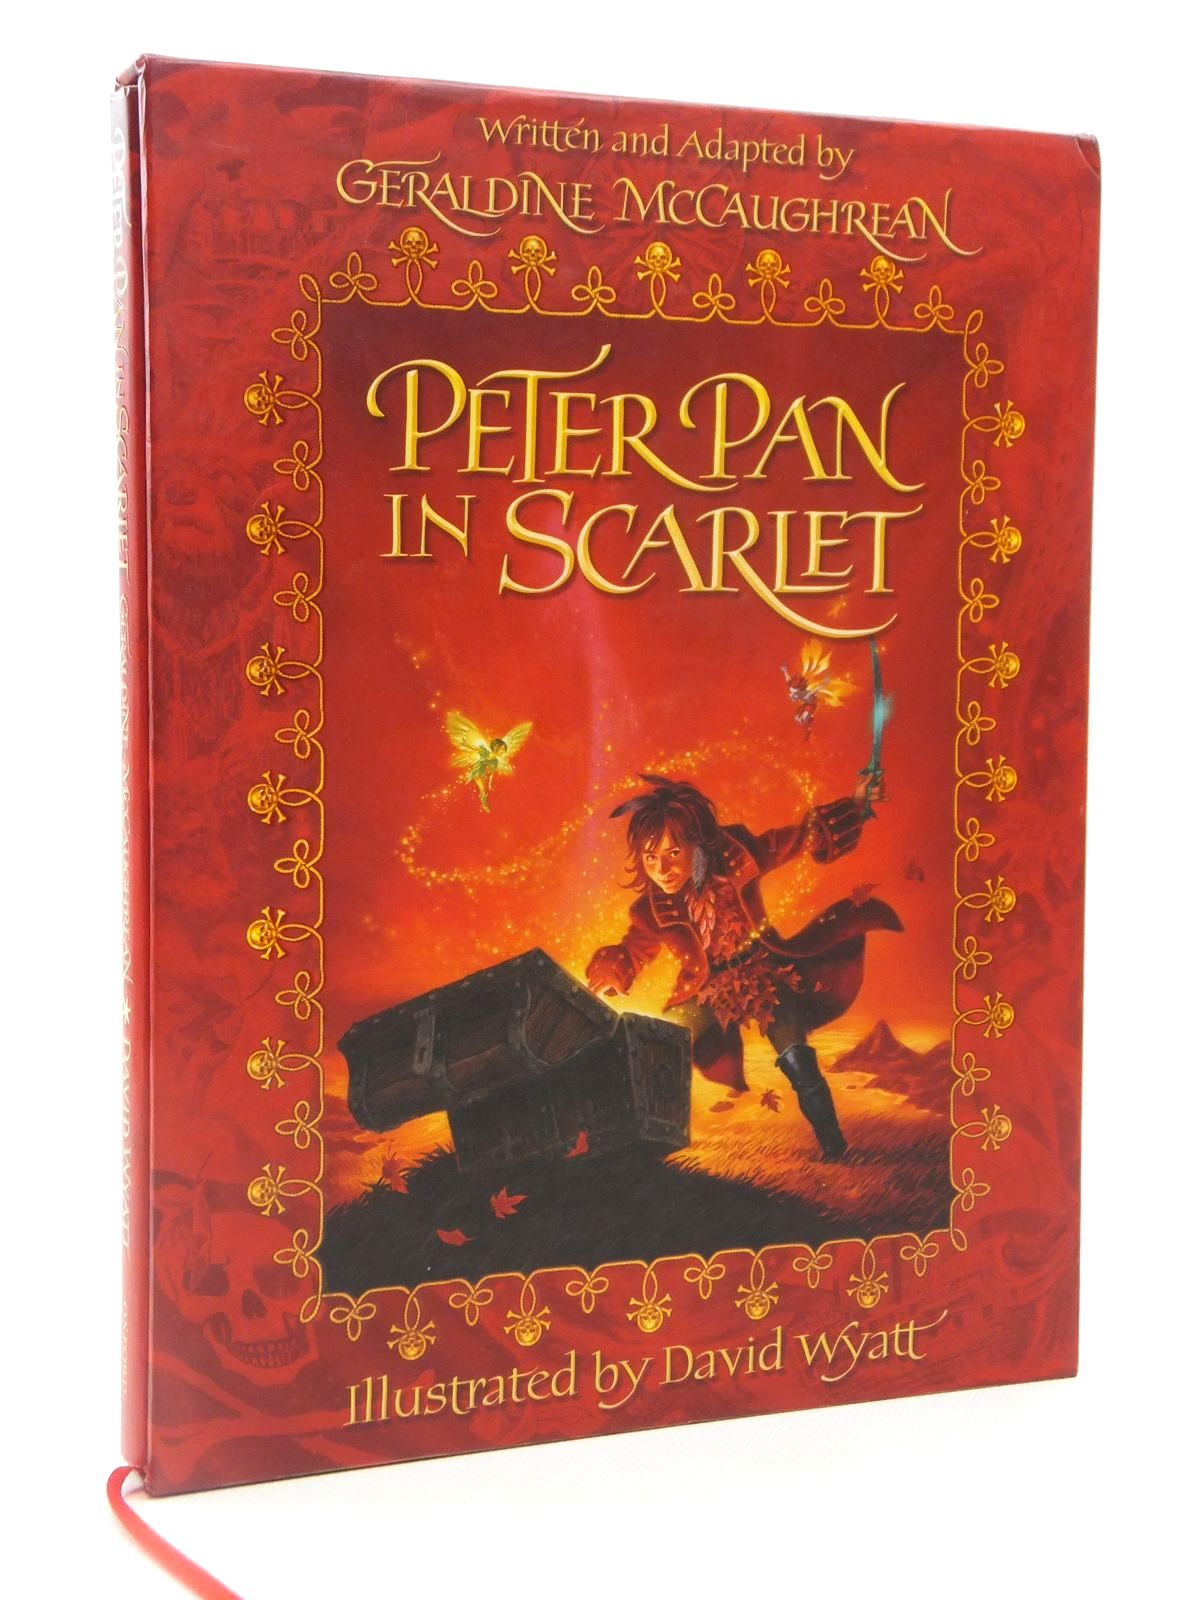 Photo of PETER PAN IN SCARLET written by McCaughrean, Geraldine illustrated by Wyatt, David published by Oxford University Press (STOCK CODE: 2122300)  for sale by Stella & Rose's Books